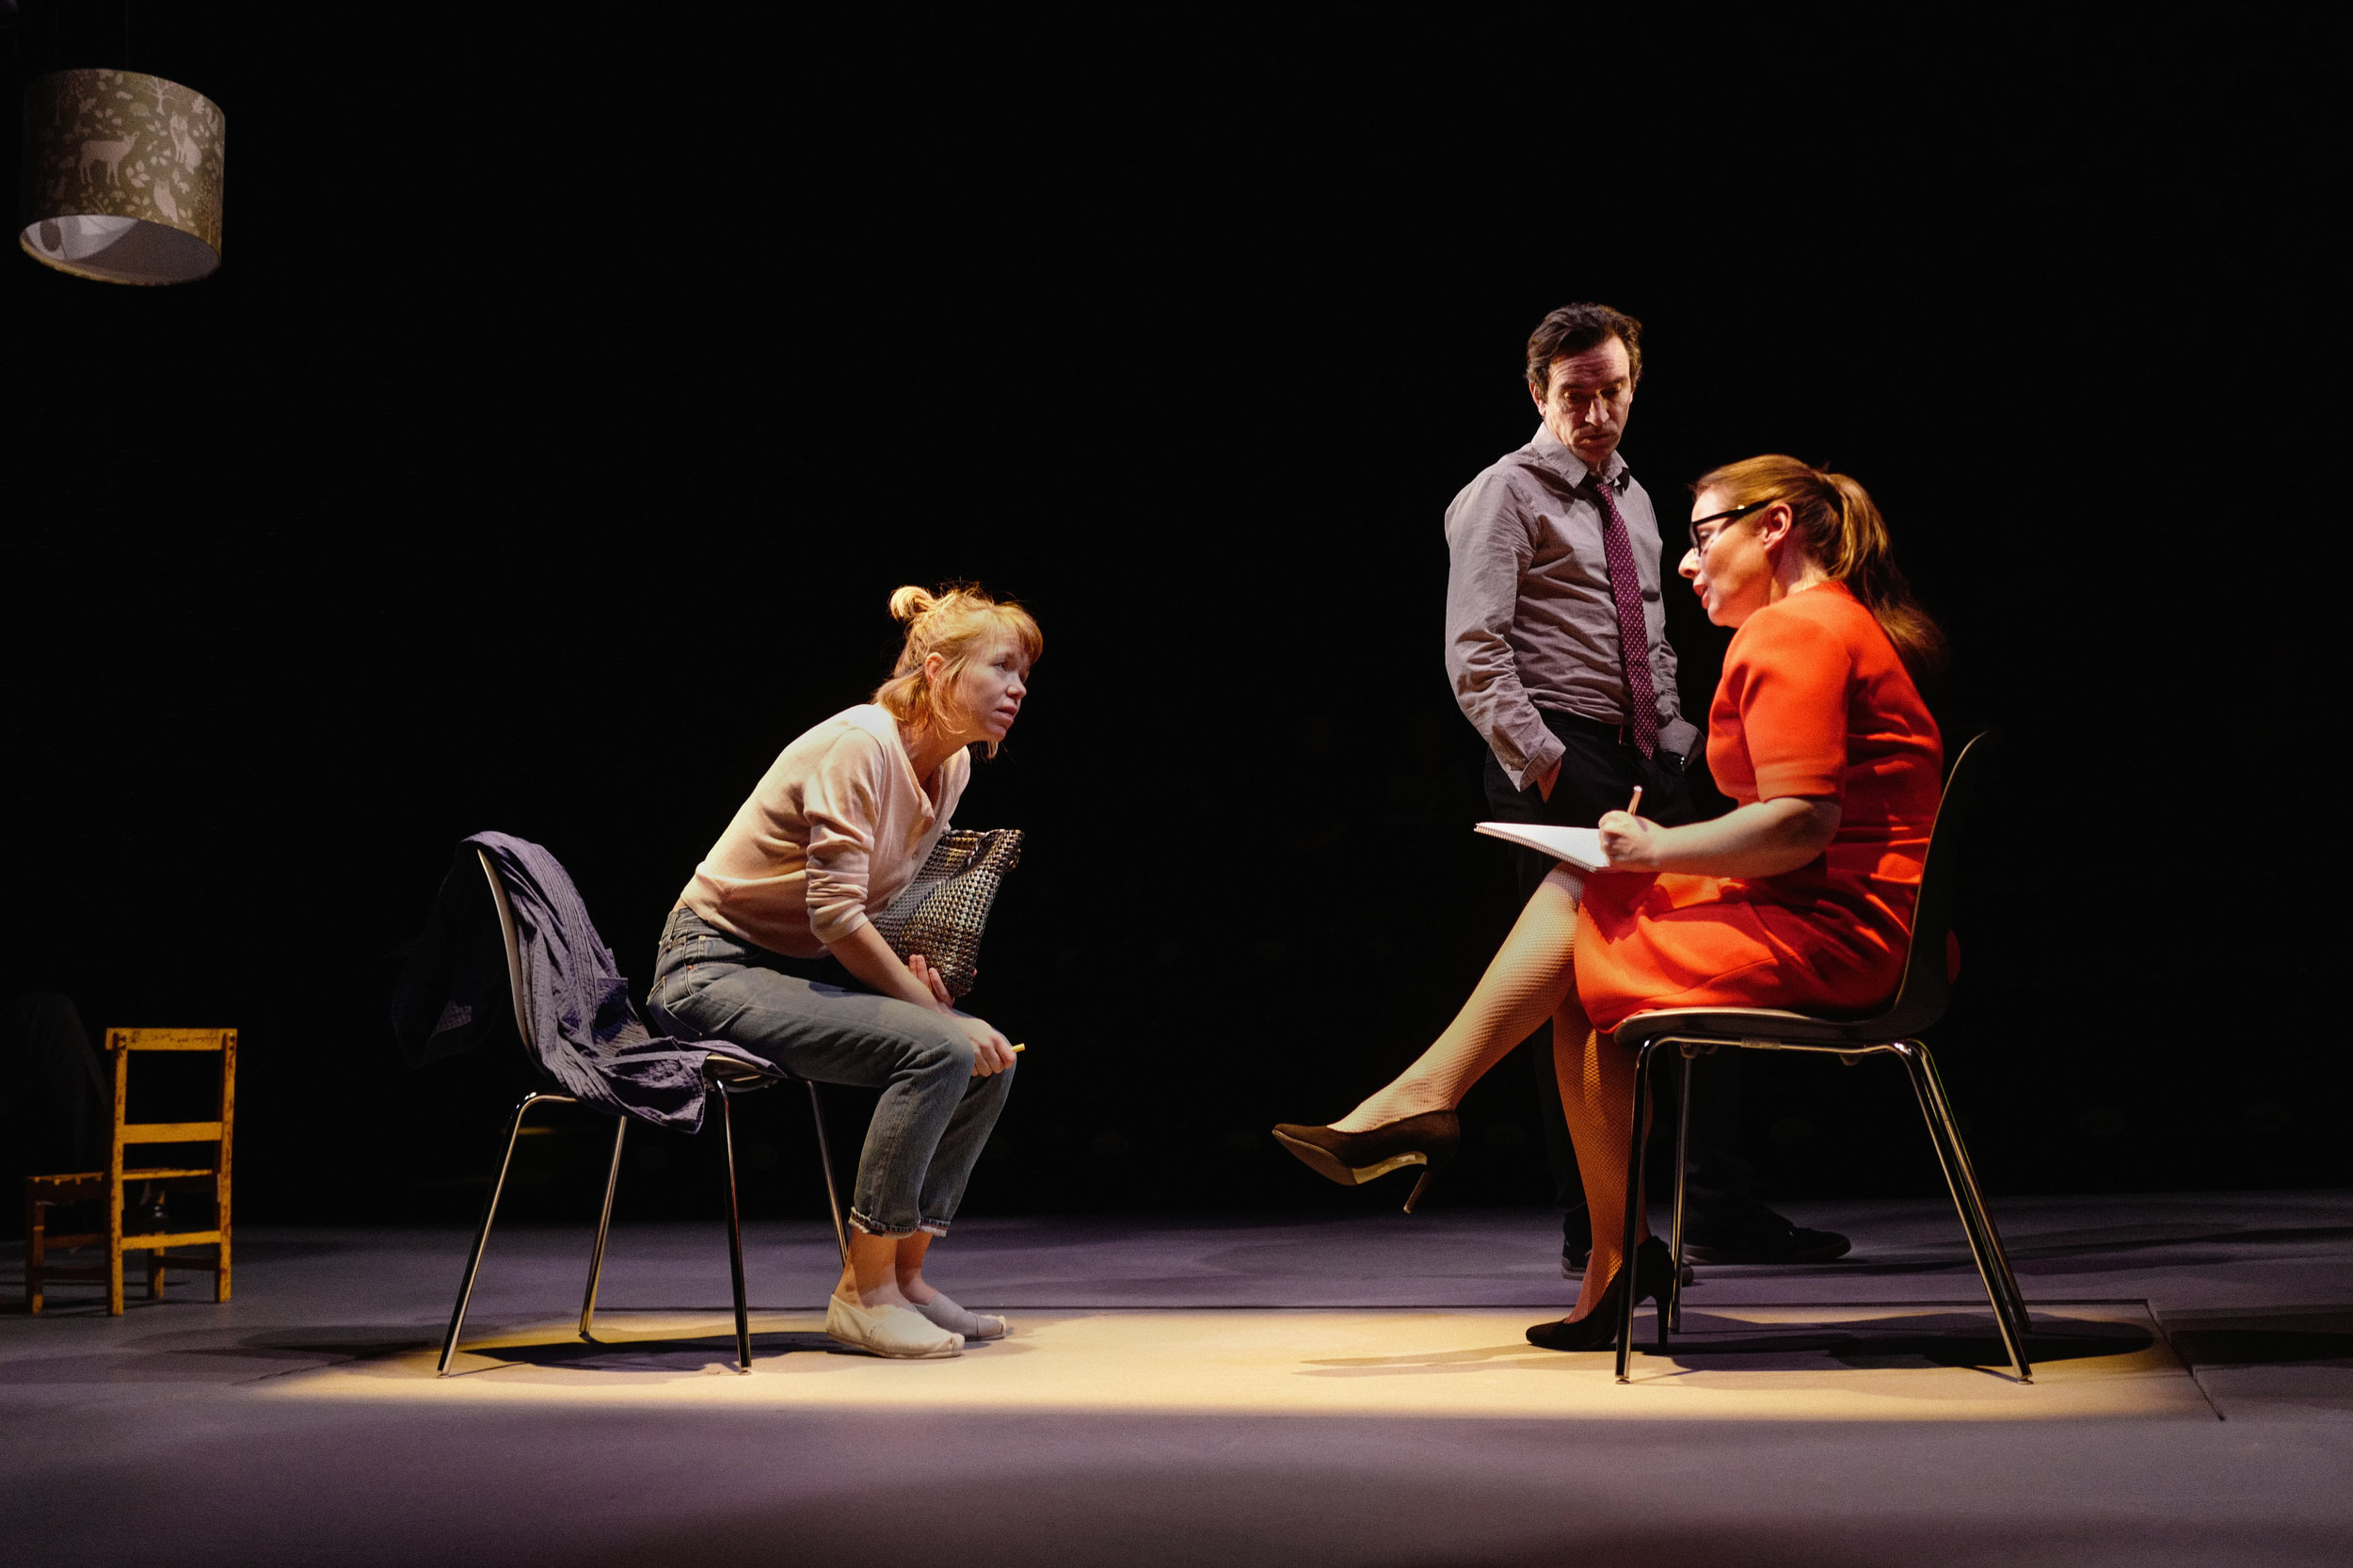 Anna Maxwell Martin (Kitty), Ben Chaplin (Ed) and Heather Craney (Laura) in a scene from  Consent  at the National Theatre. Photo: Sarah Lee